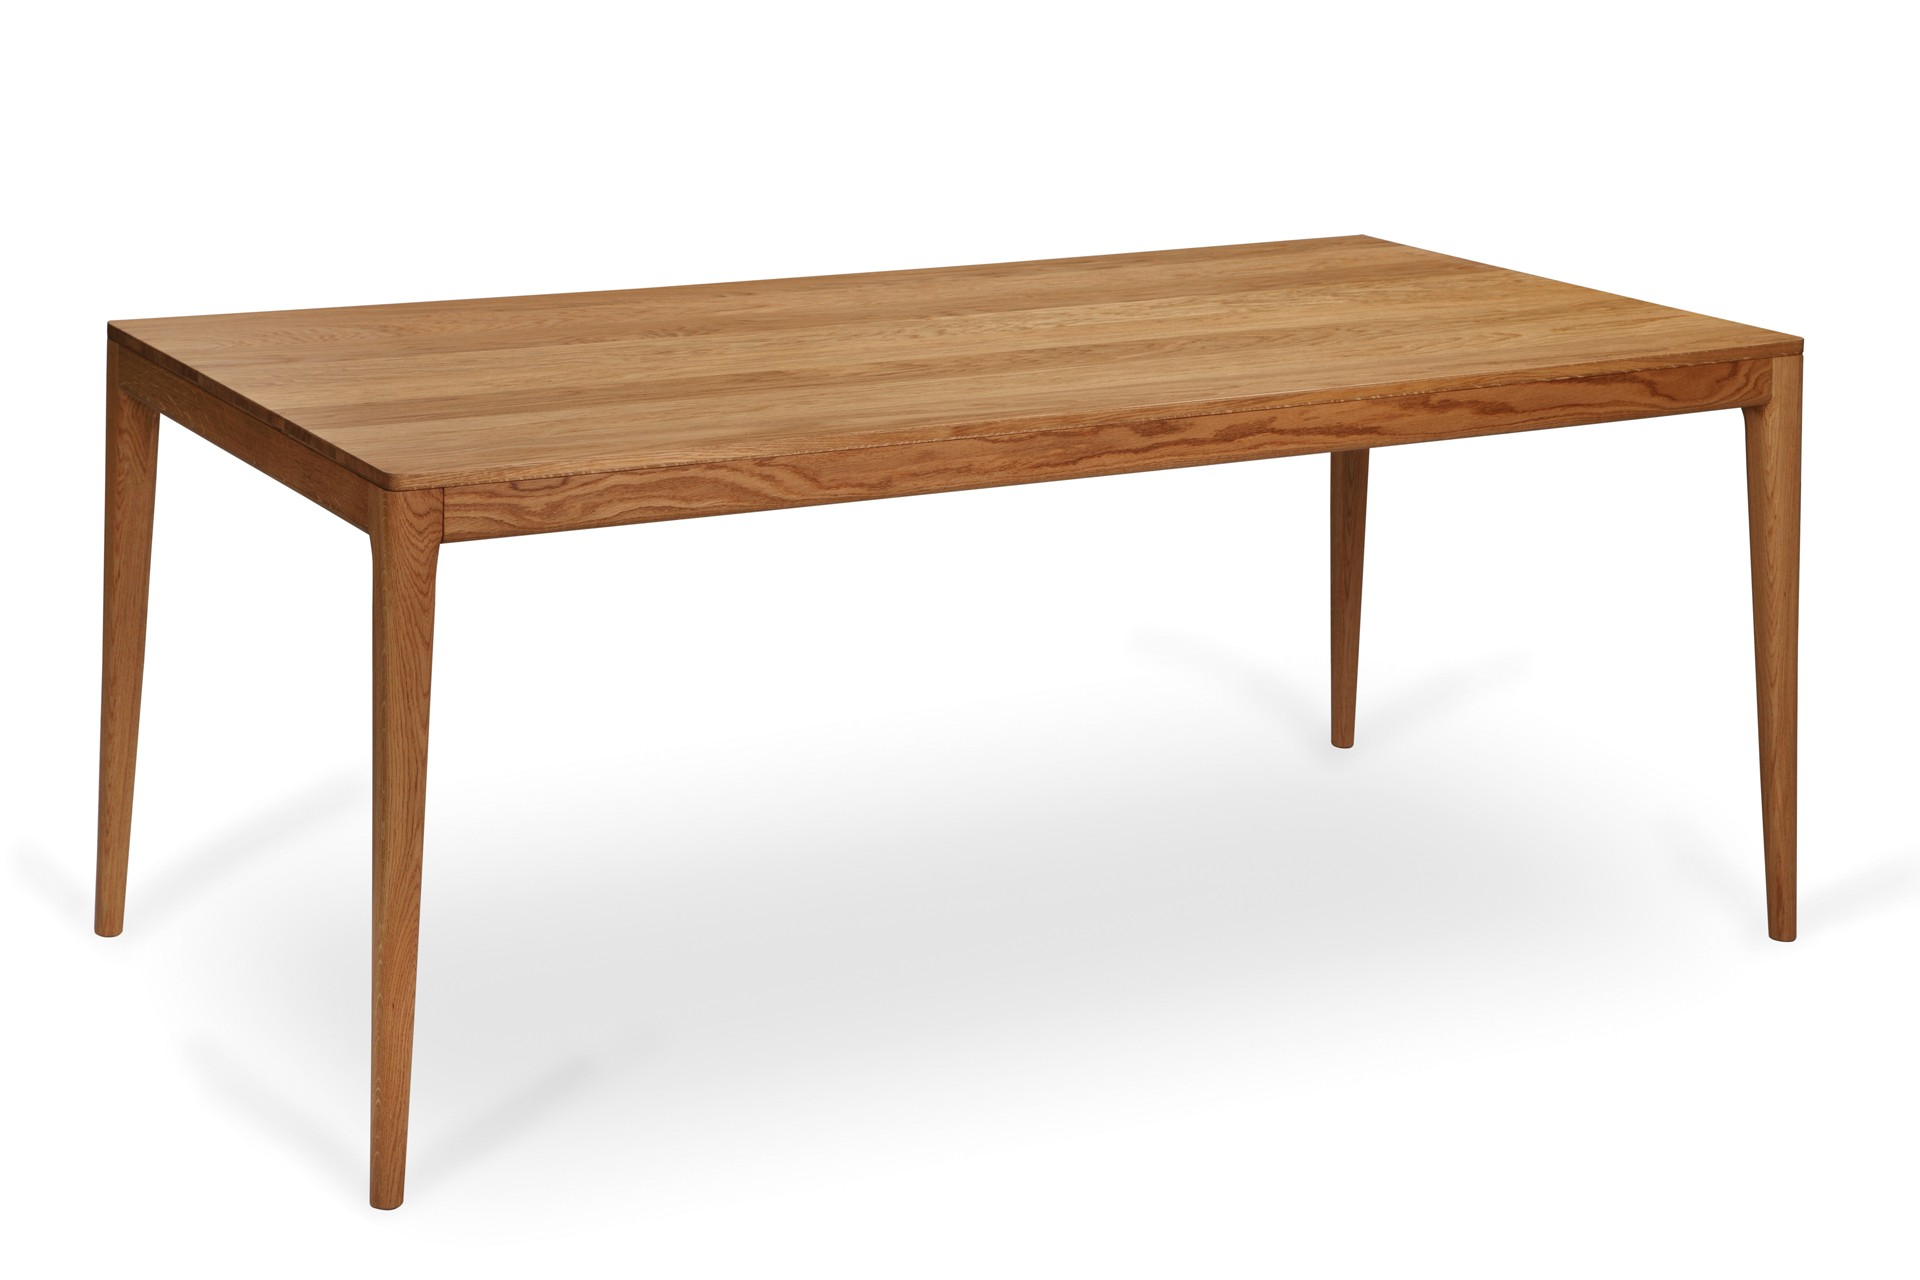 Gatta Table Kaplan Furniture